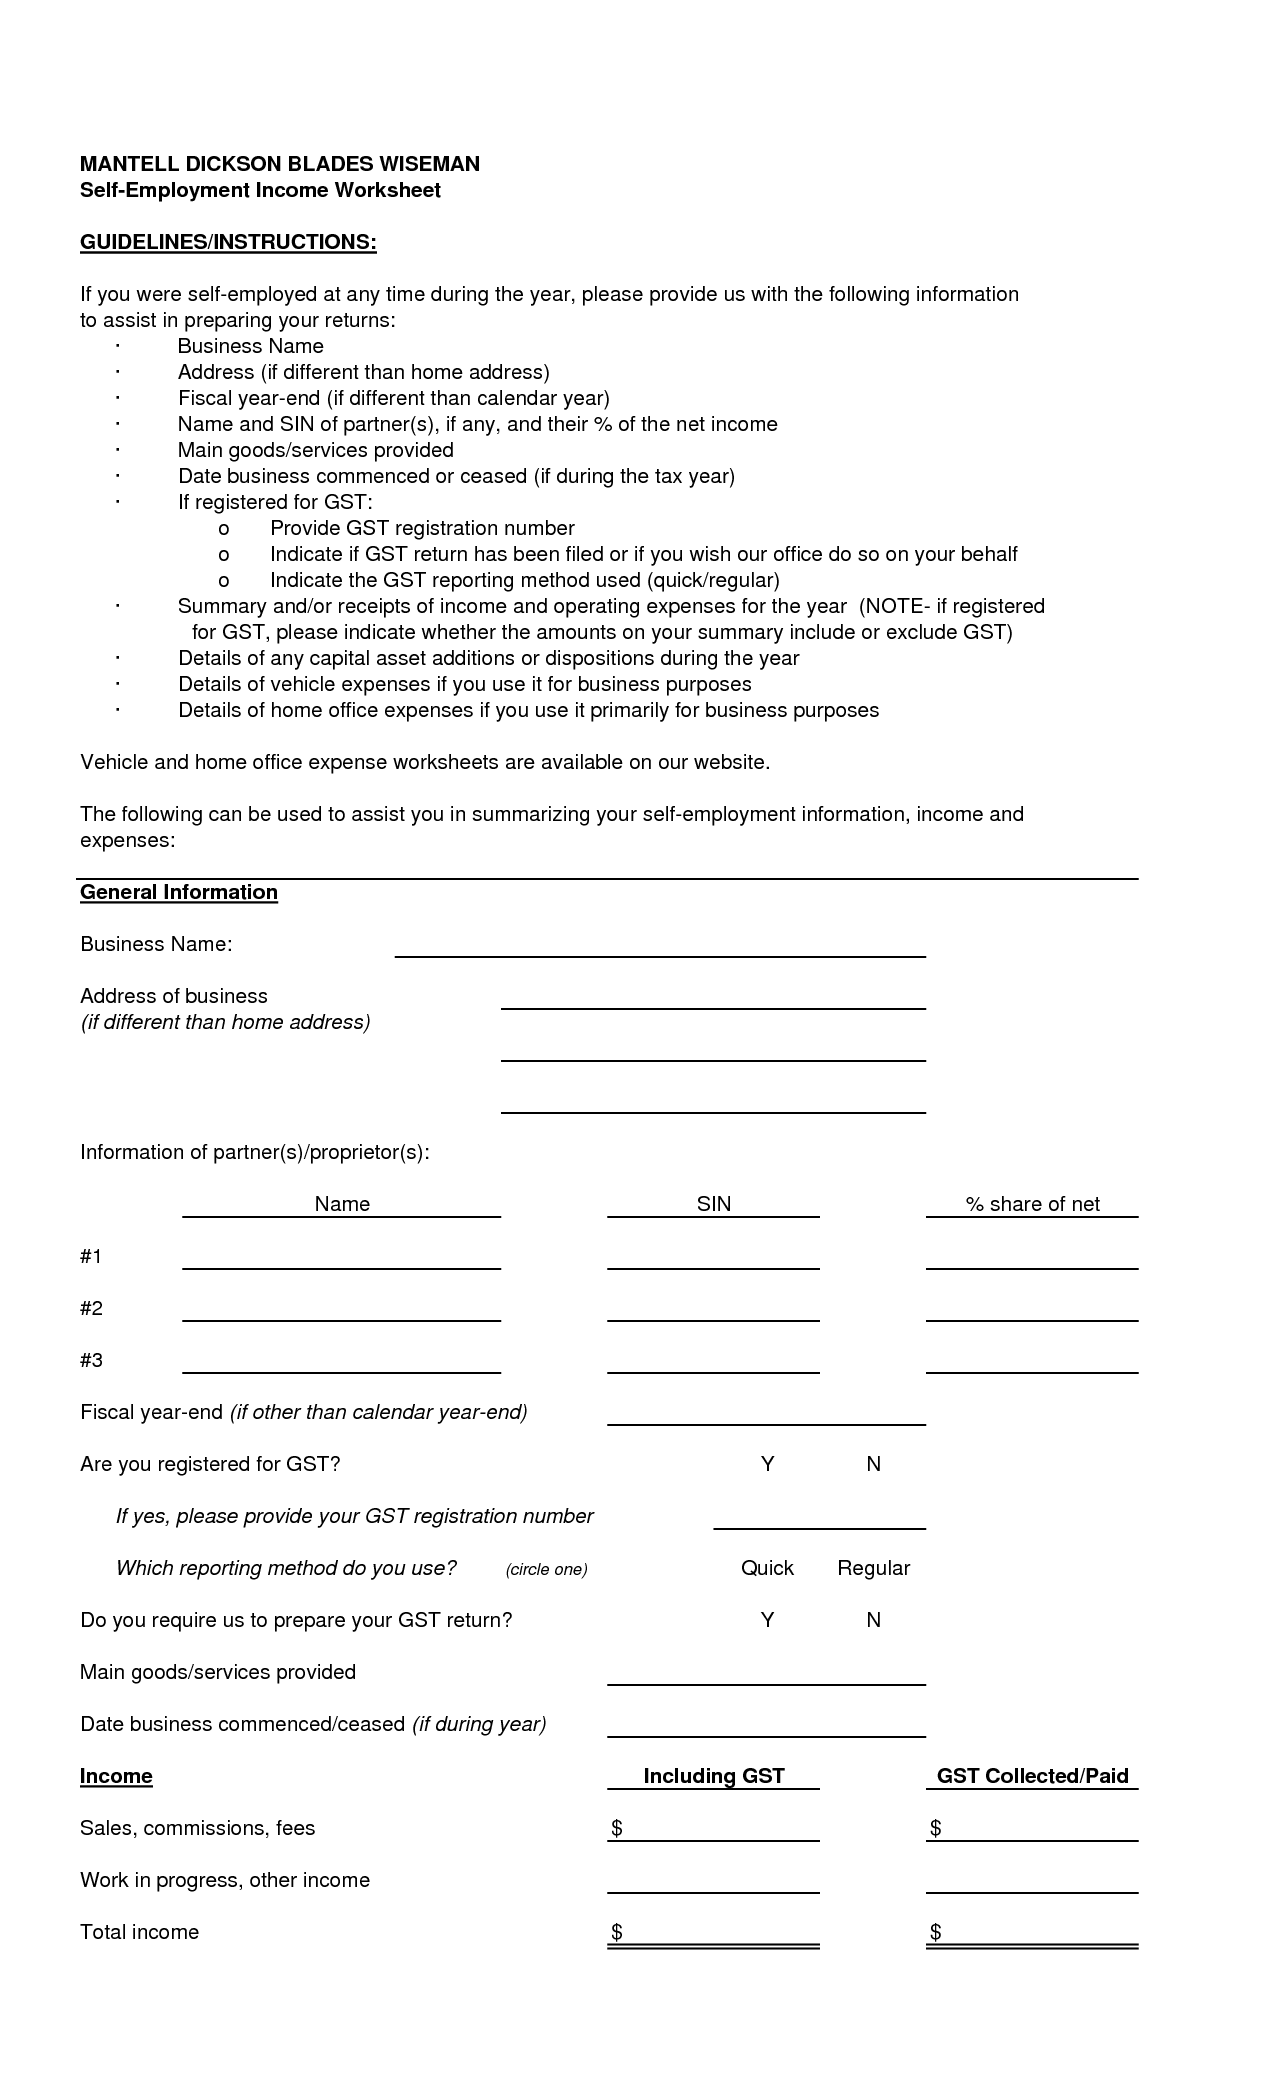 Worksheet To Calculate Self Employment Ine